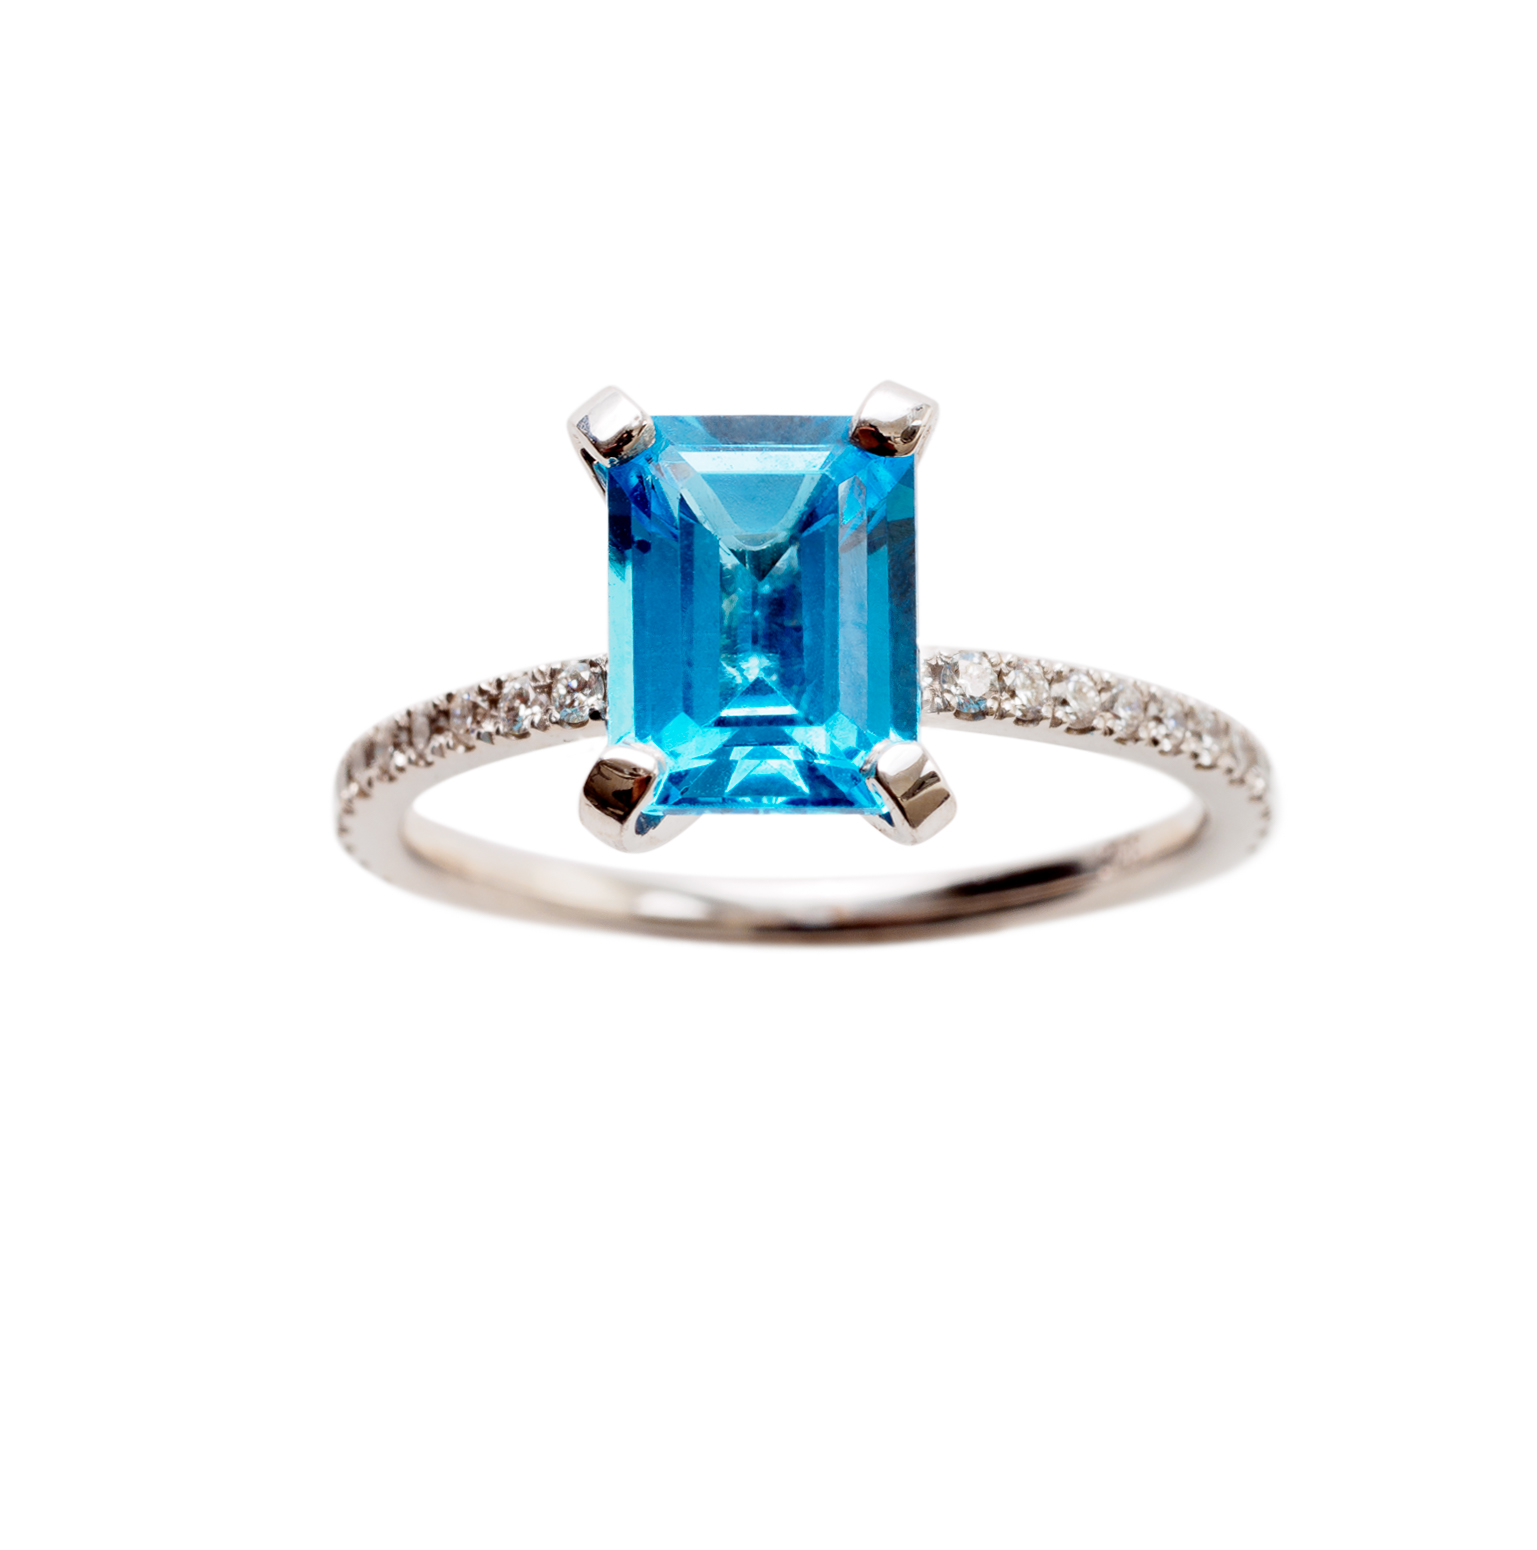 ST. TROPEZ RING 22.500 NOK. 18 kt gold with diamonds and blue topaz